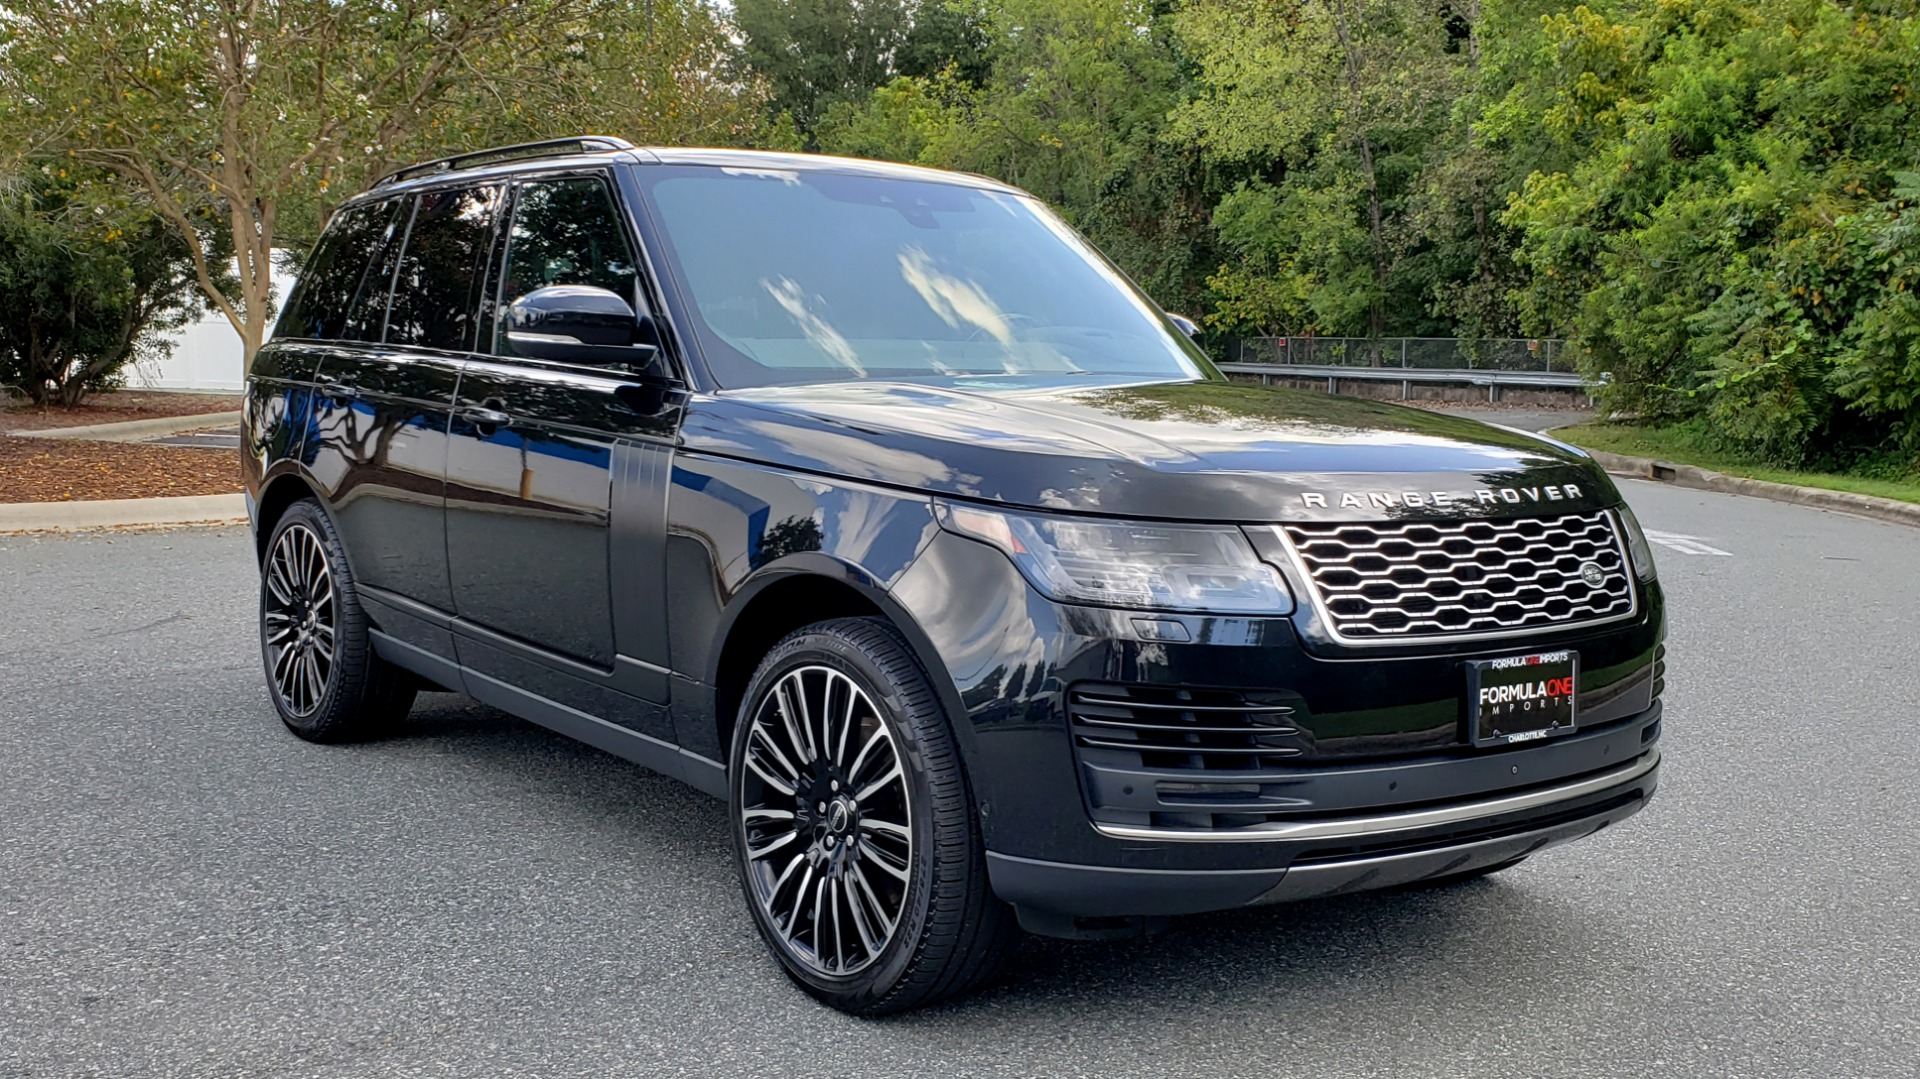 Used 2019 Land Rover RANGE ROVER SCV8 / NAV / PANO-ROOF / MERIDIAN / REARVIEW for sale Sold at Formula Imports in Charlotte NC 28227 11